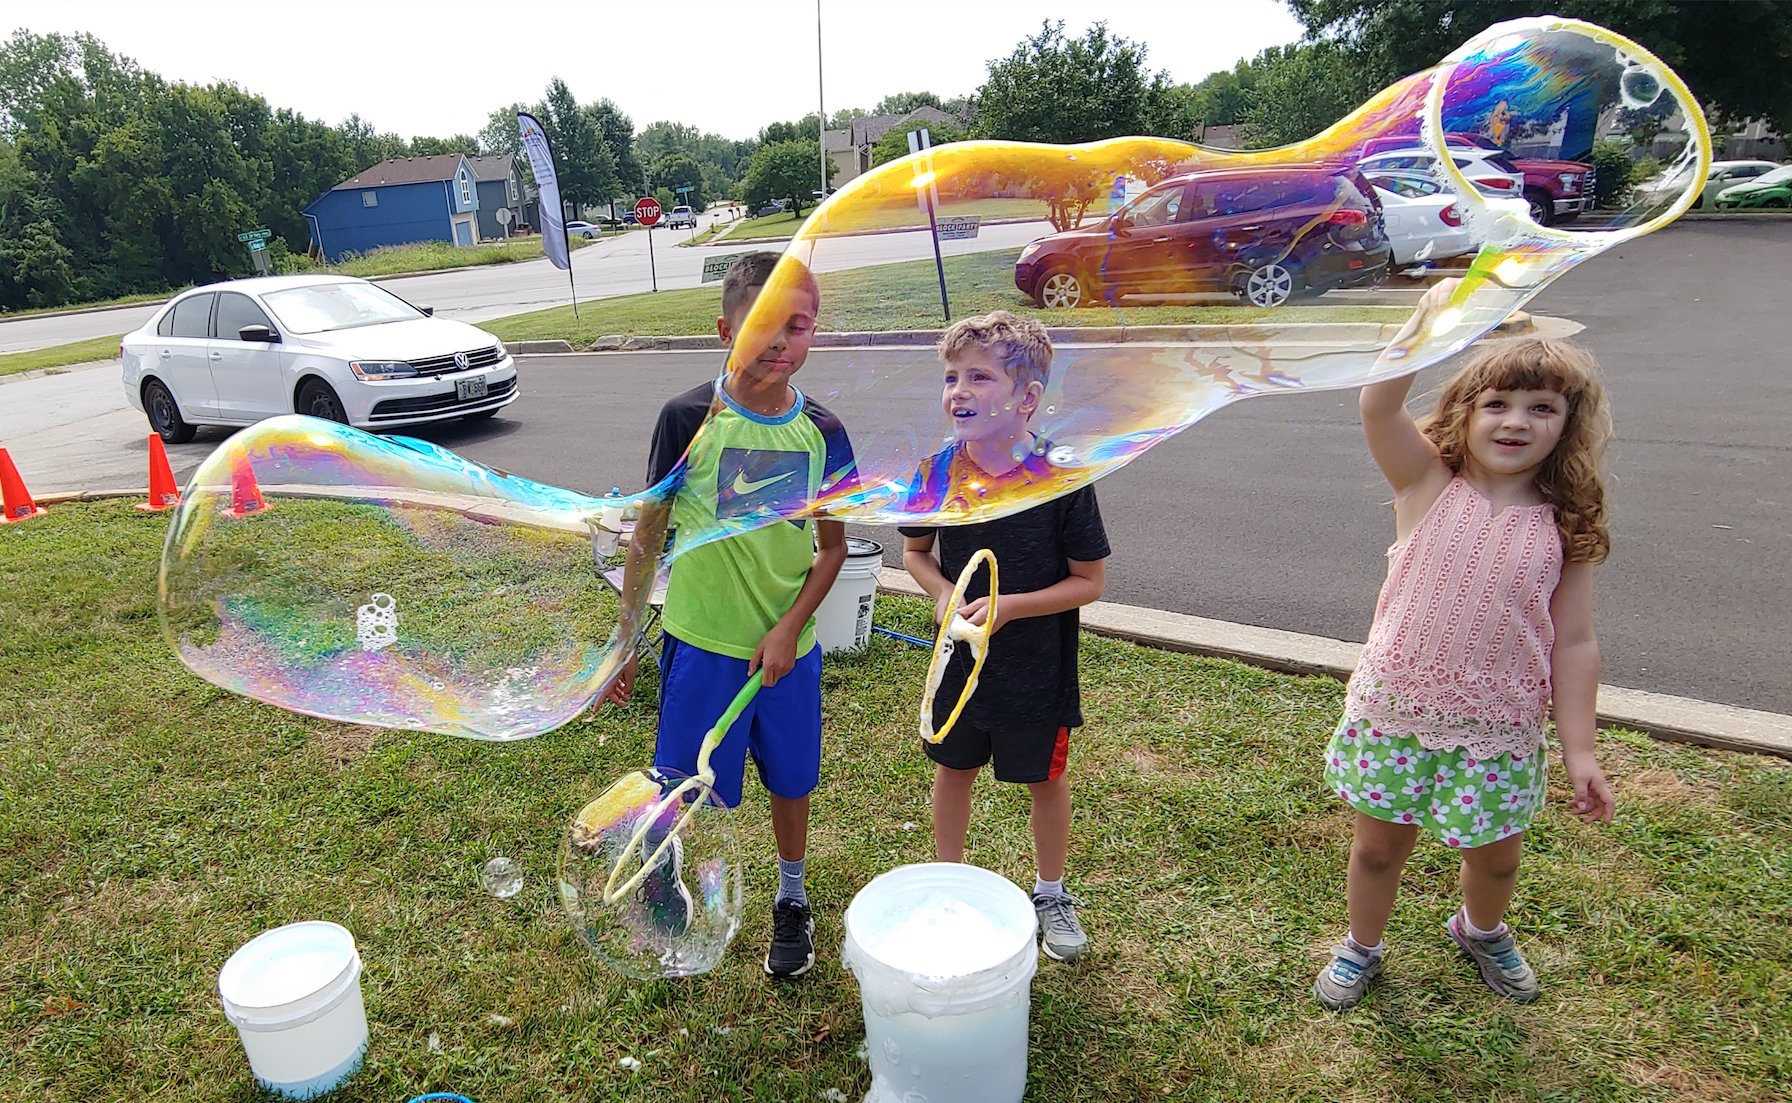 Children create giant bubbles Aug. 17 at a community block party celebrating the opening of the Farview Neighborhood Library and food pantry in Independence.